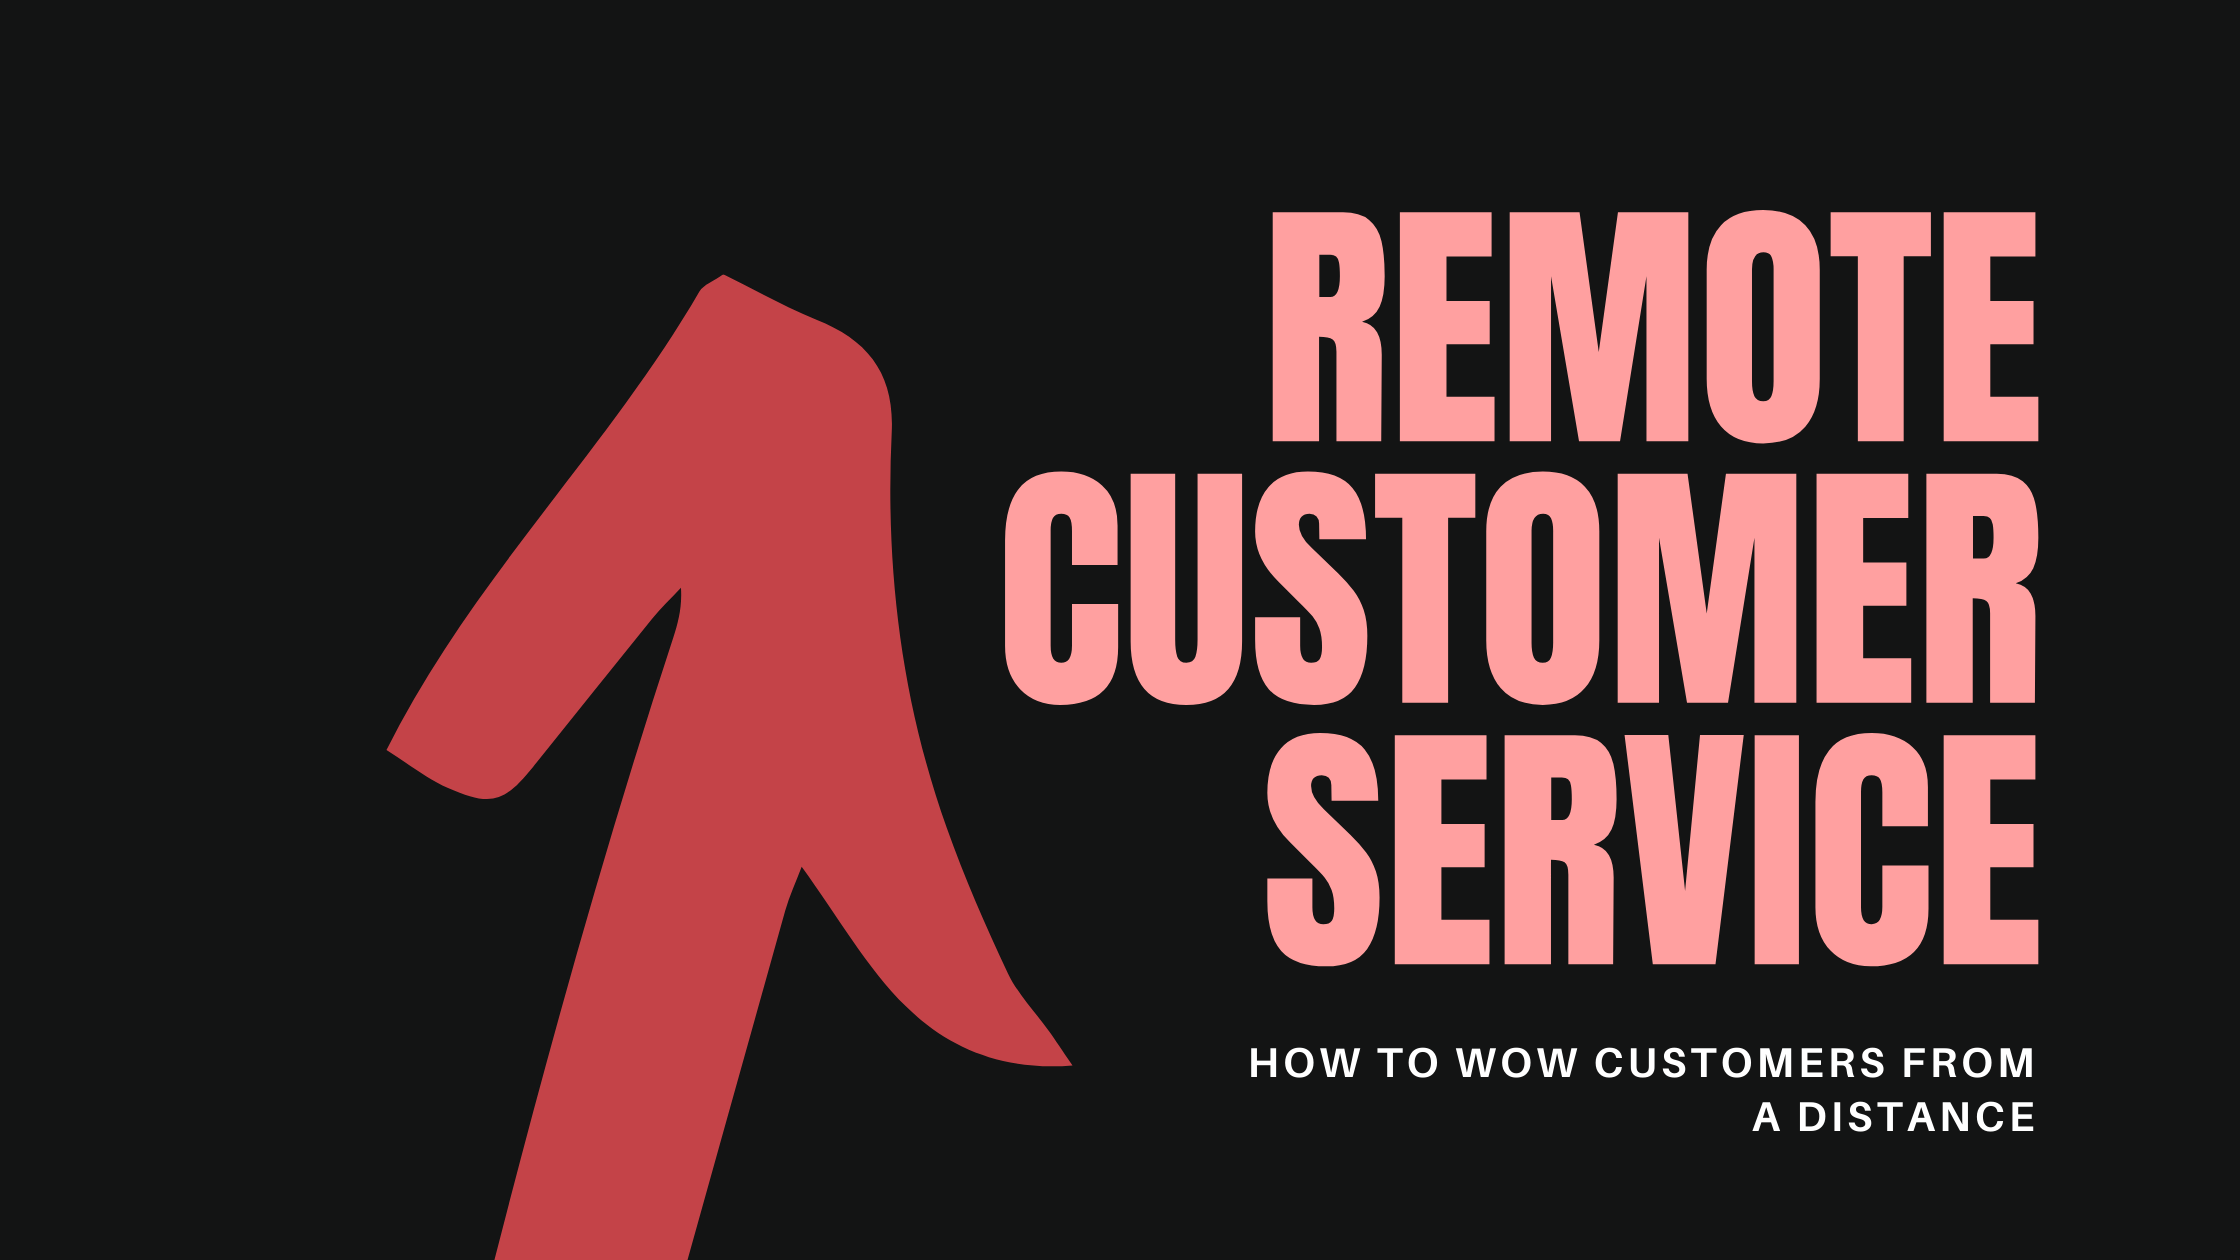 What Does Great Remote Customer Service Look Like?